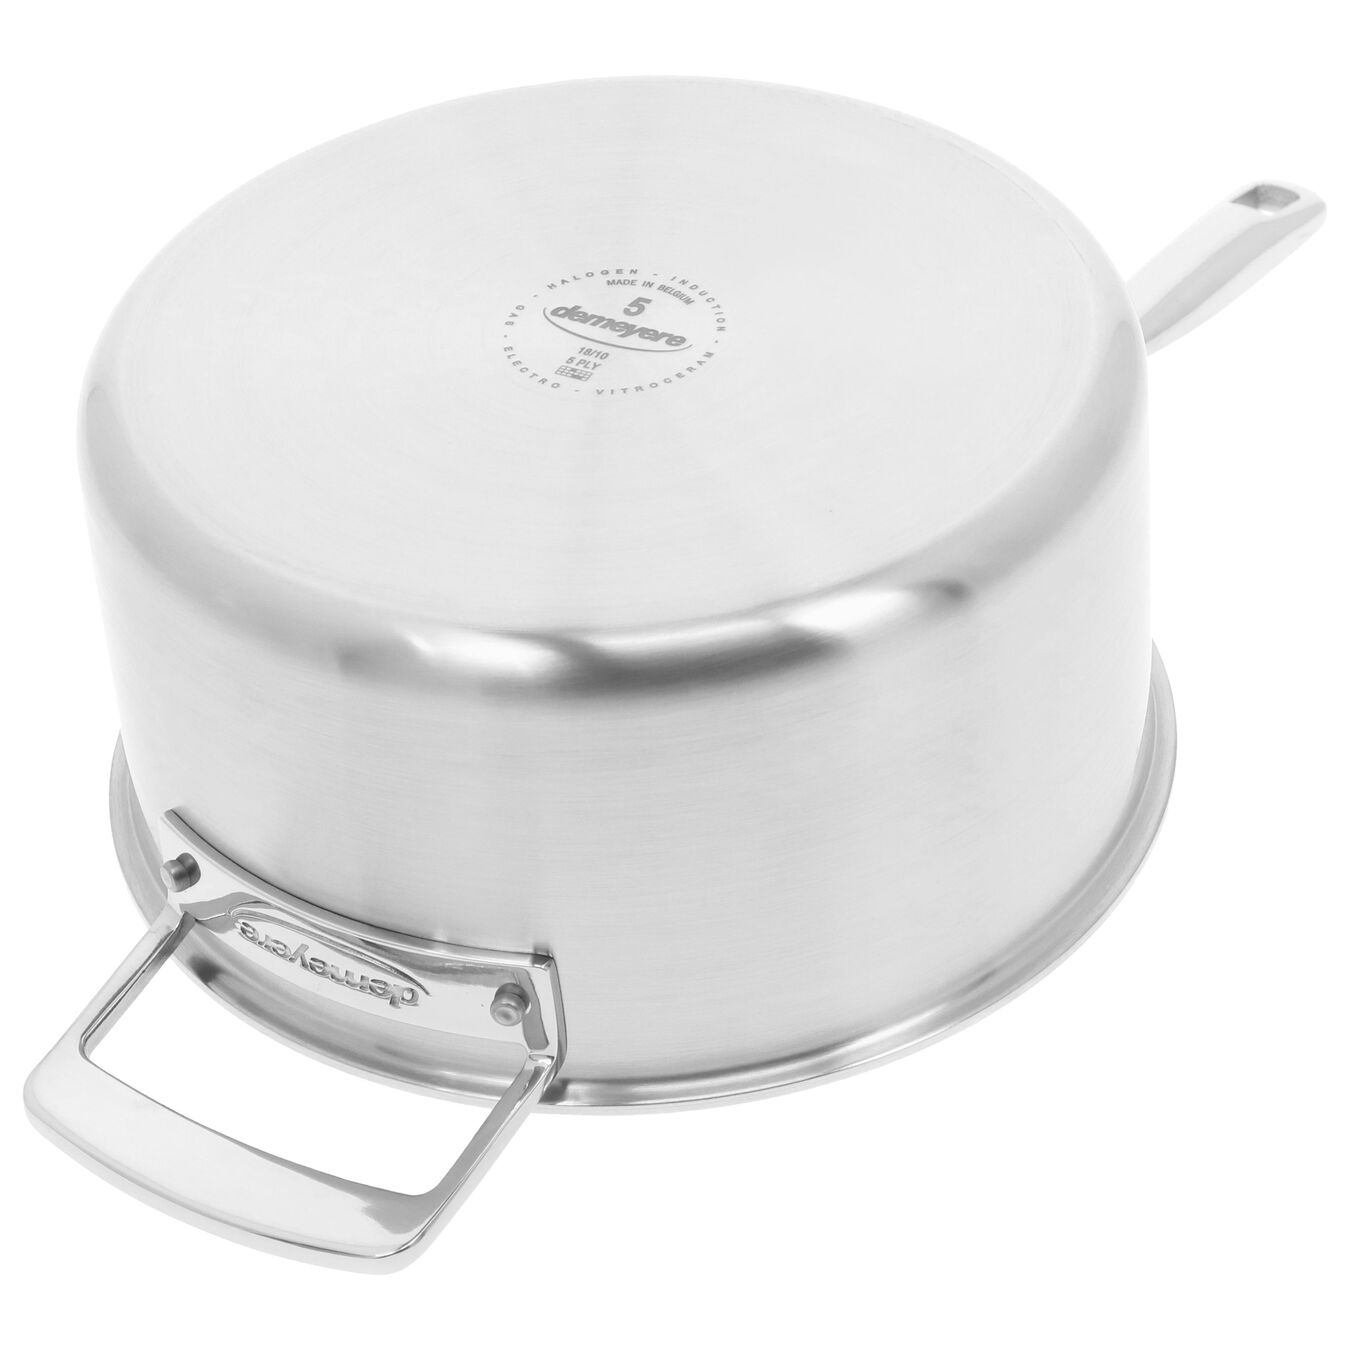 3.8 l round sauce pan with lid 4QT, silver,,large 3